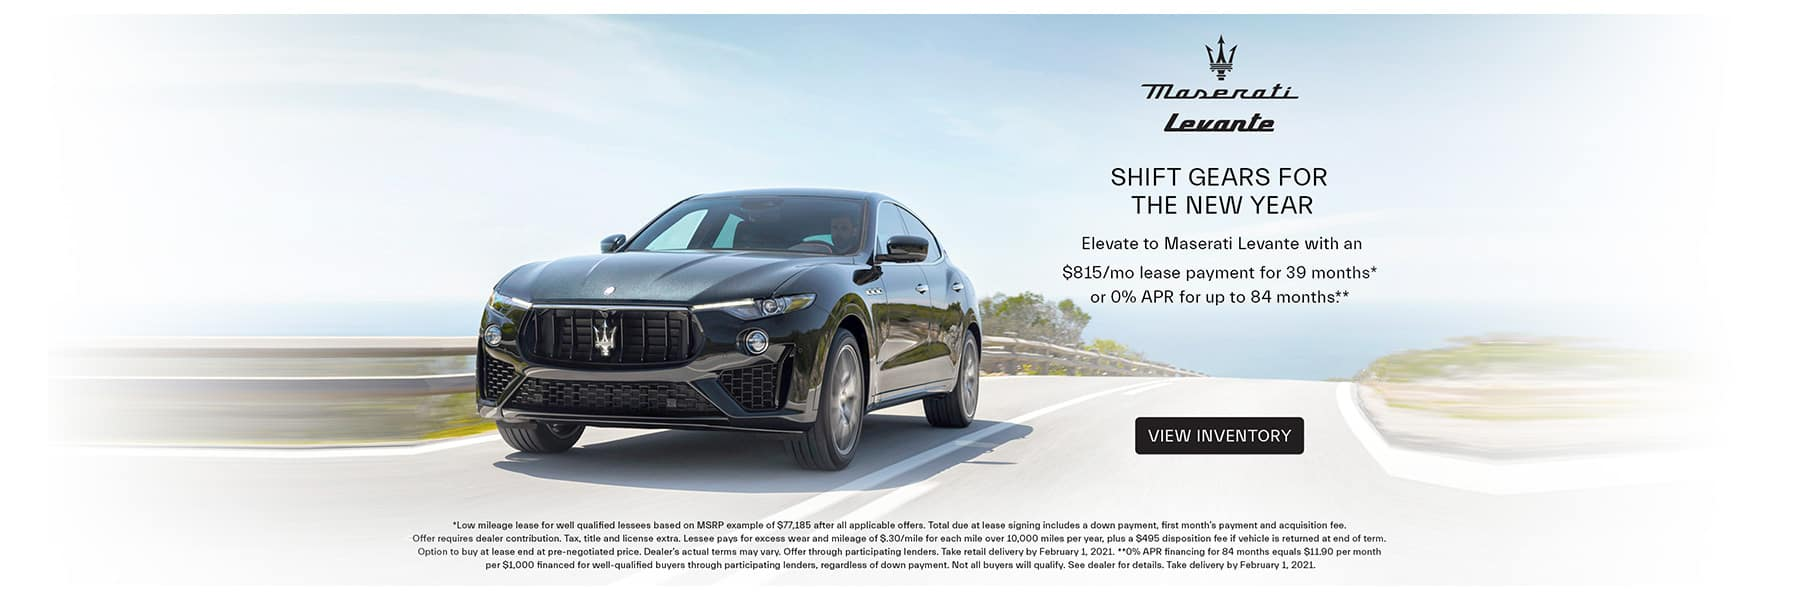 Maserati Levante Lease & Finance offer